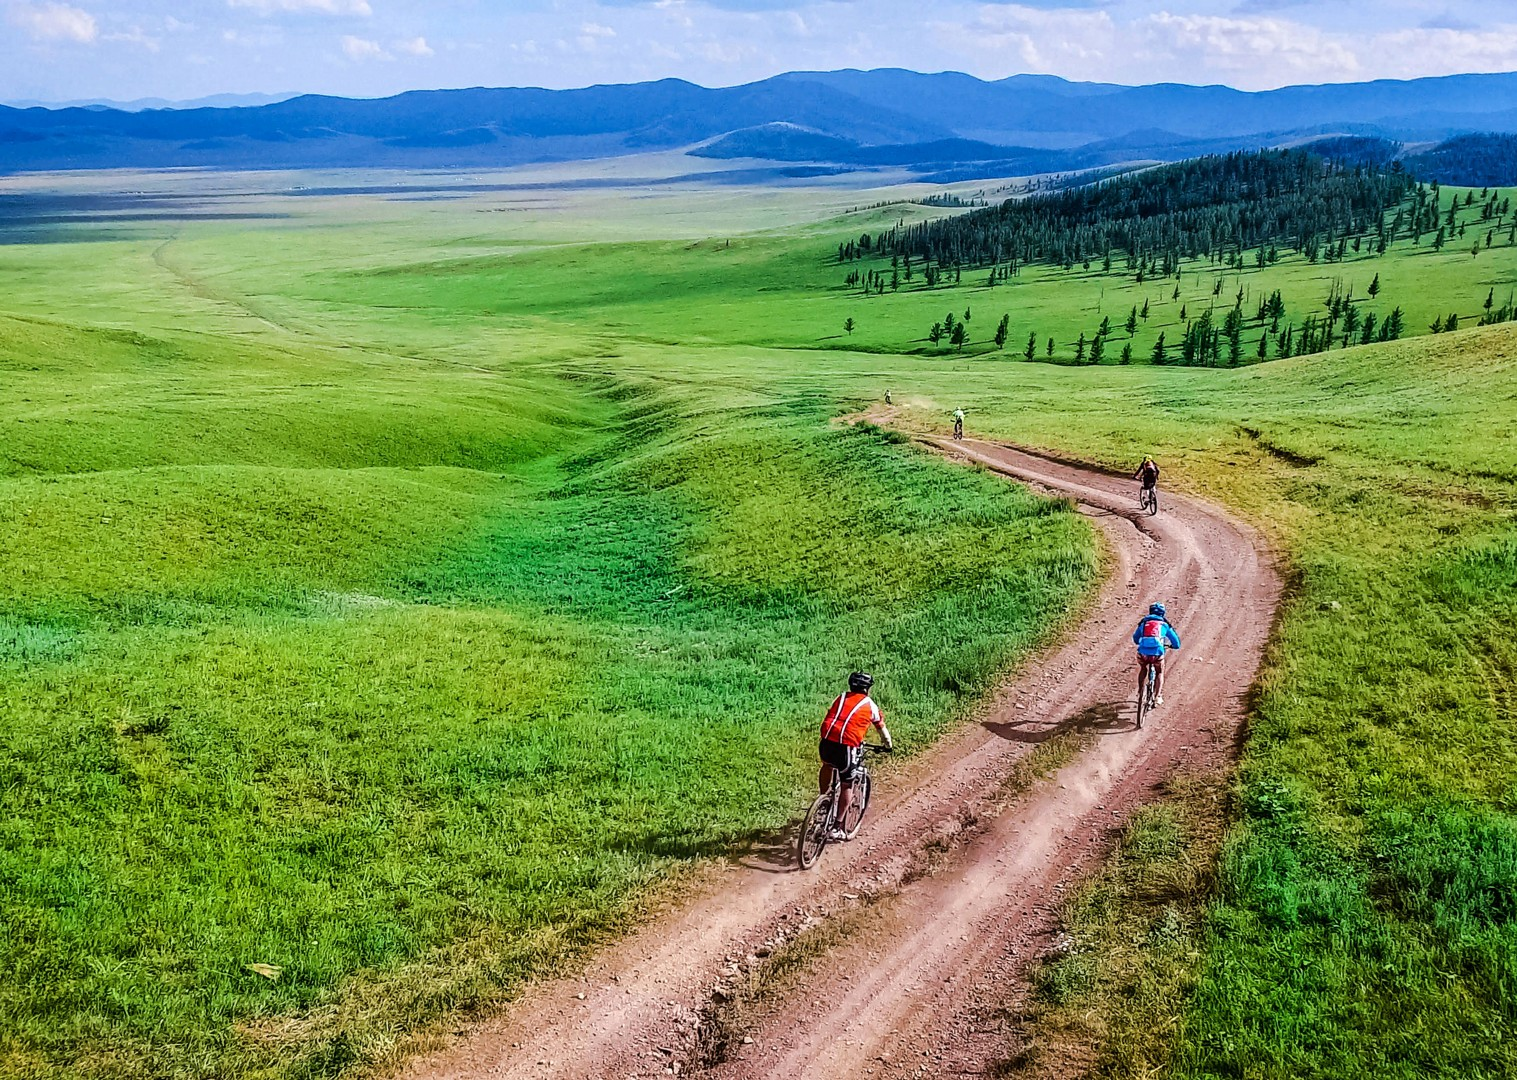 mongolia-route-of-the-nomads-cycling-holiday.jpg - Mongolia - Route of the Nomads - Cycling Holiday - Cycling Adventures